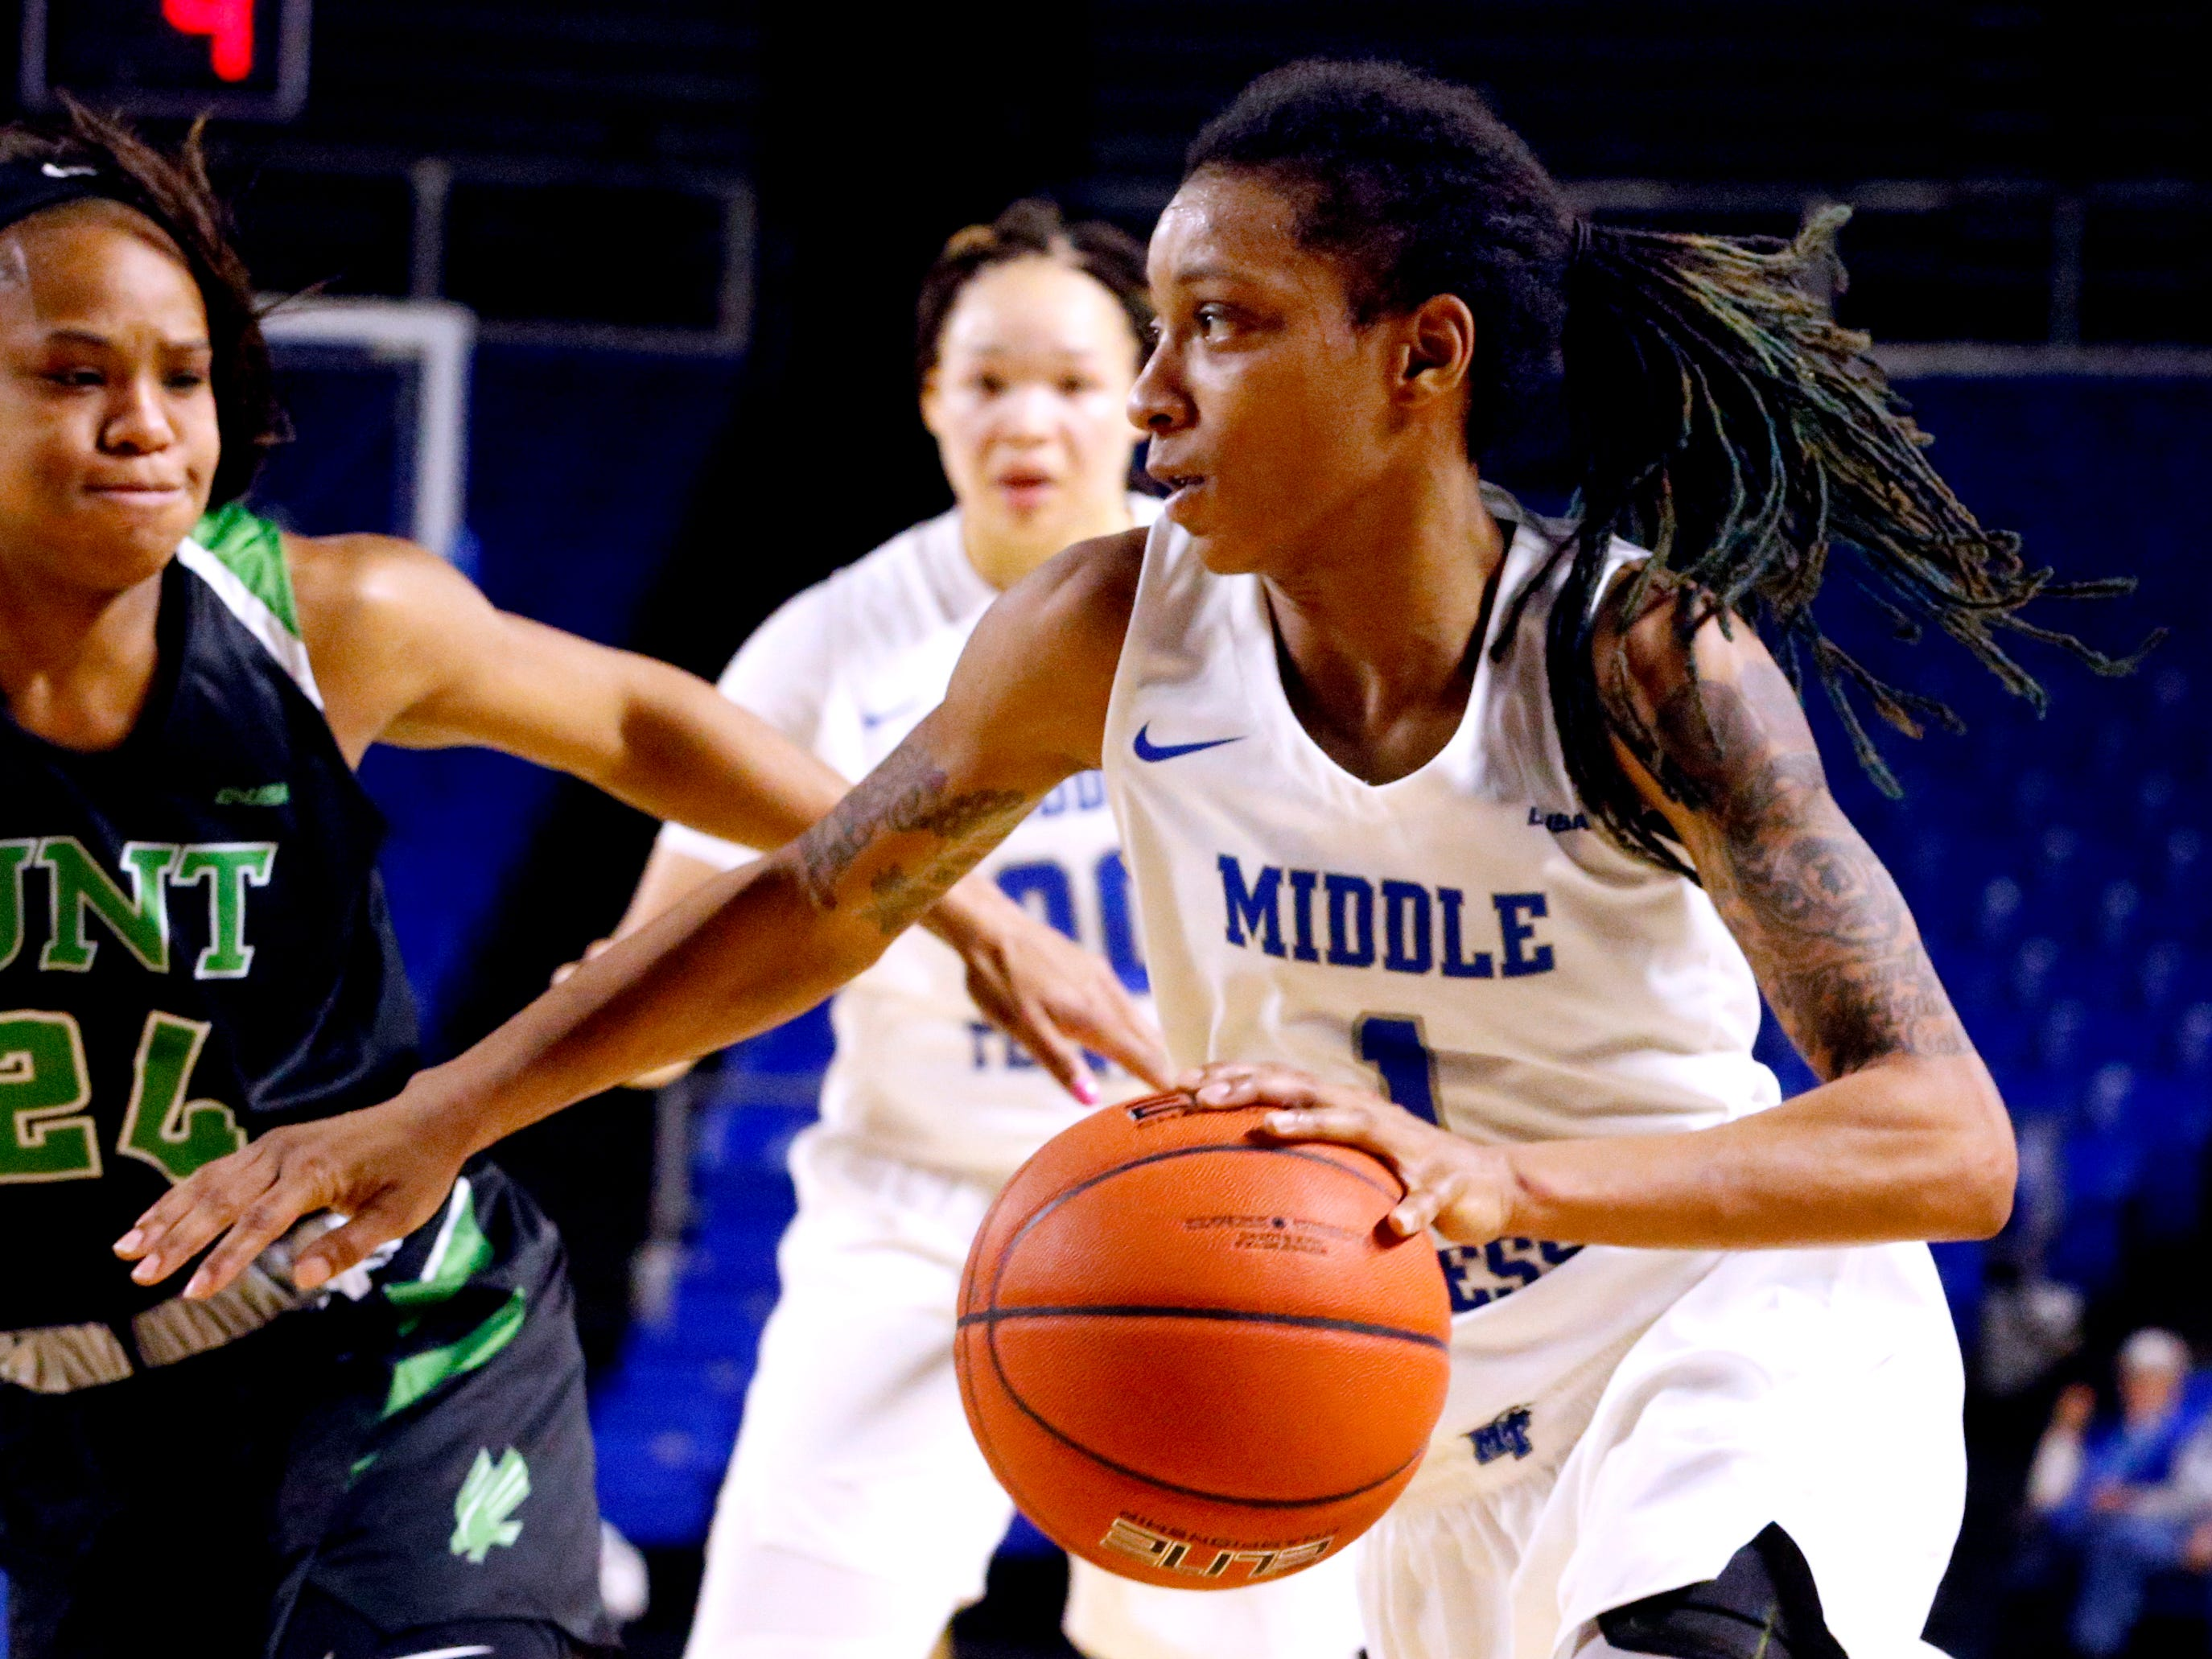 MTSU's guard A'Queen Hayes (1) drives to the basket as North Texas' guard Trena Mims (24) comes in to guard her on Saturday Jan. 26, 2019.